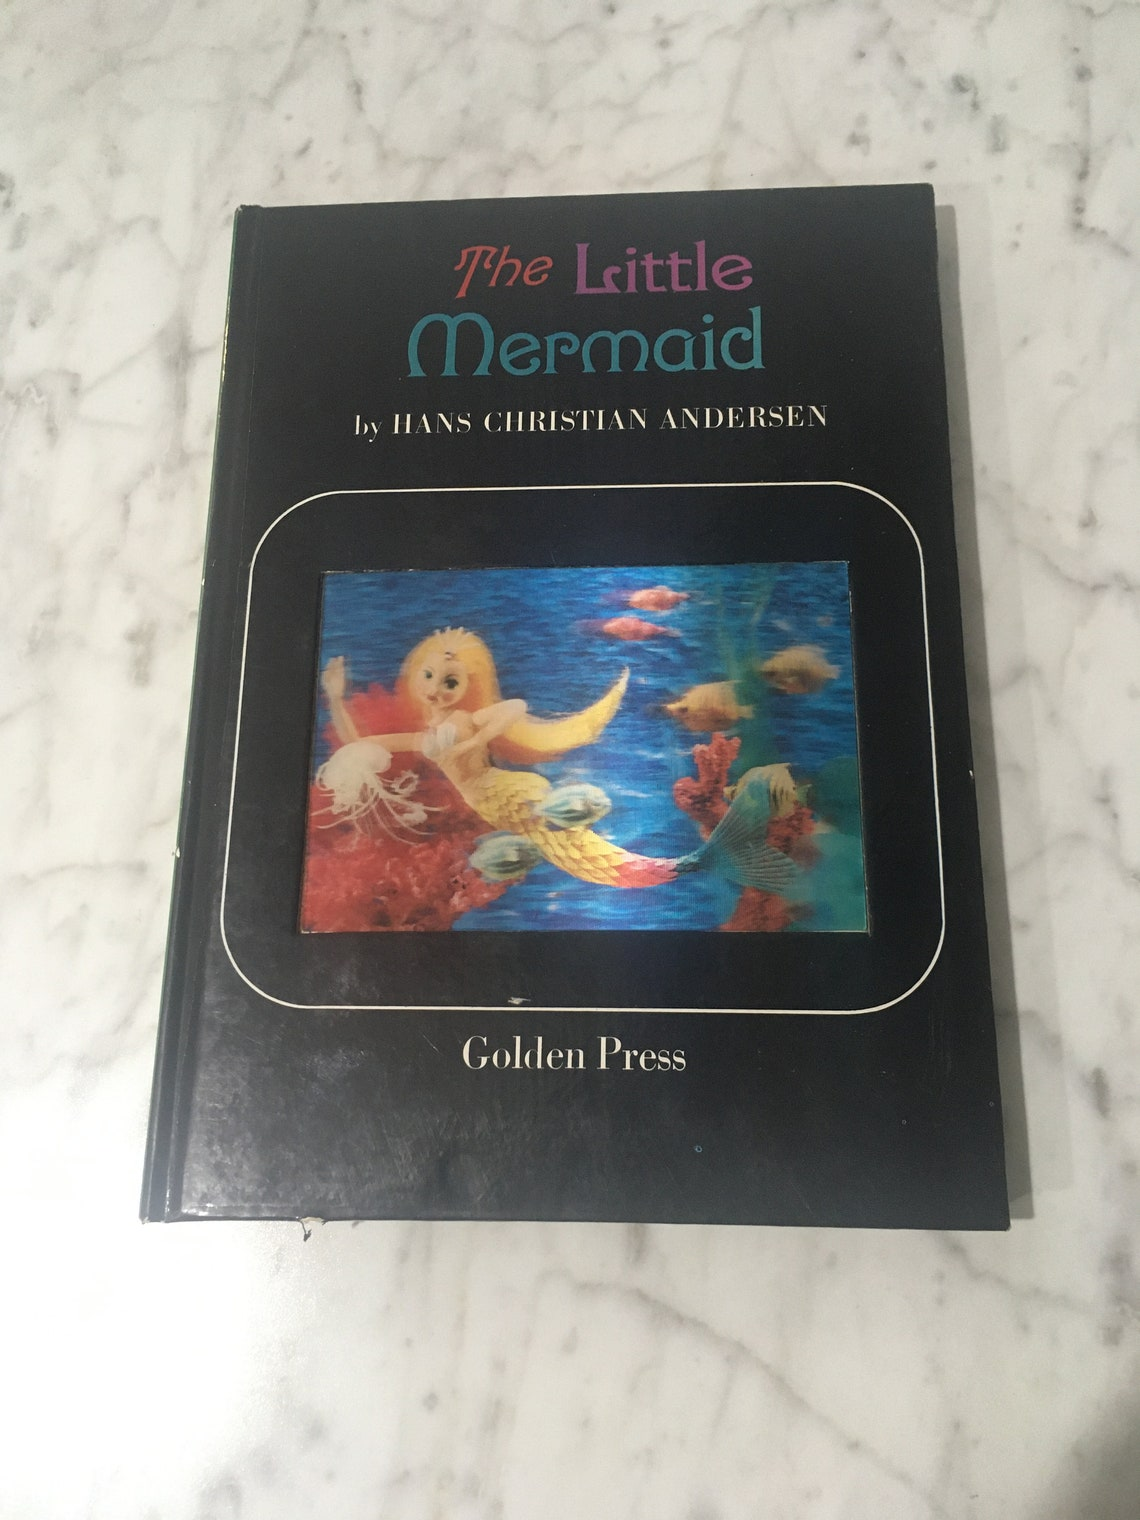 1966 Vintage Book THE LITTLE MERMAID Hans Christian Andersen image 0